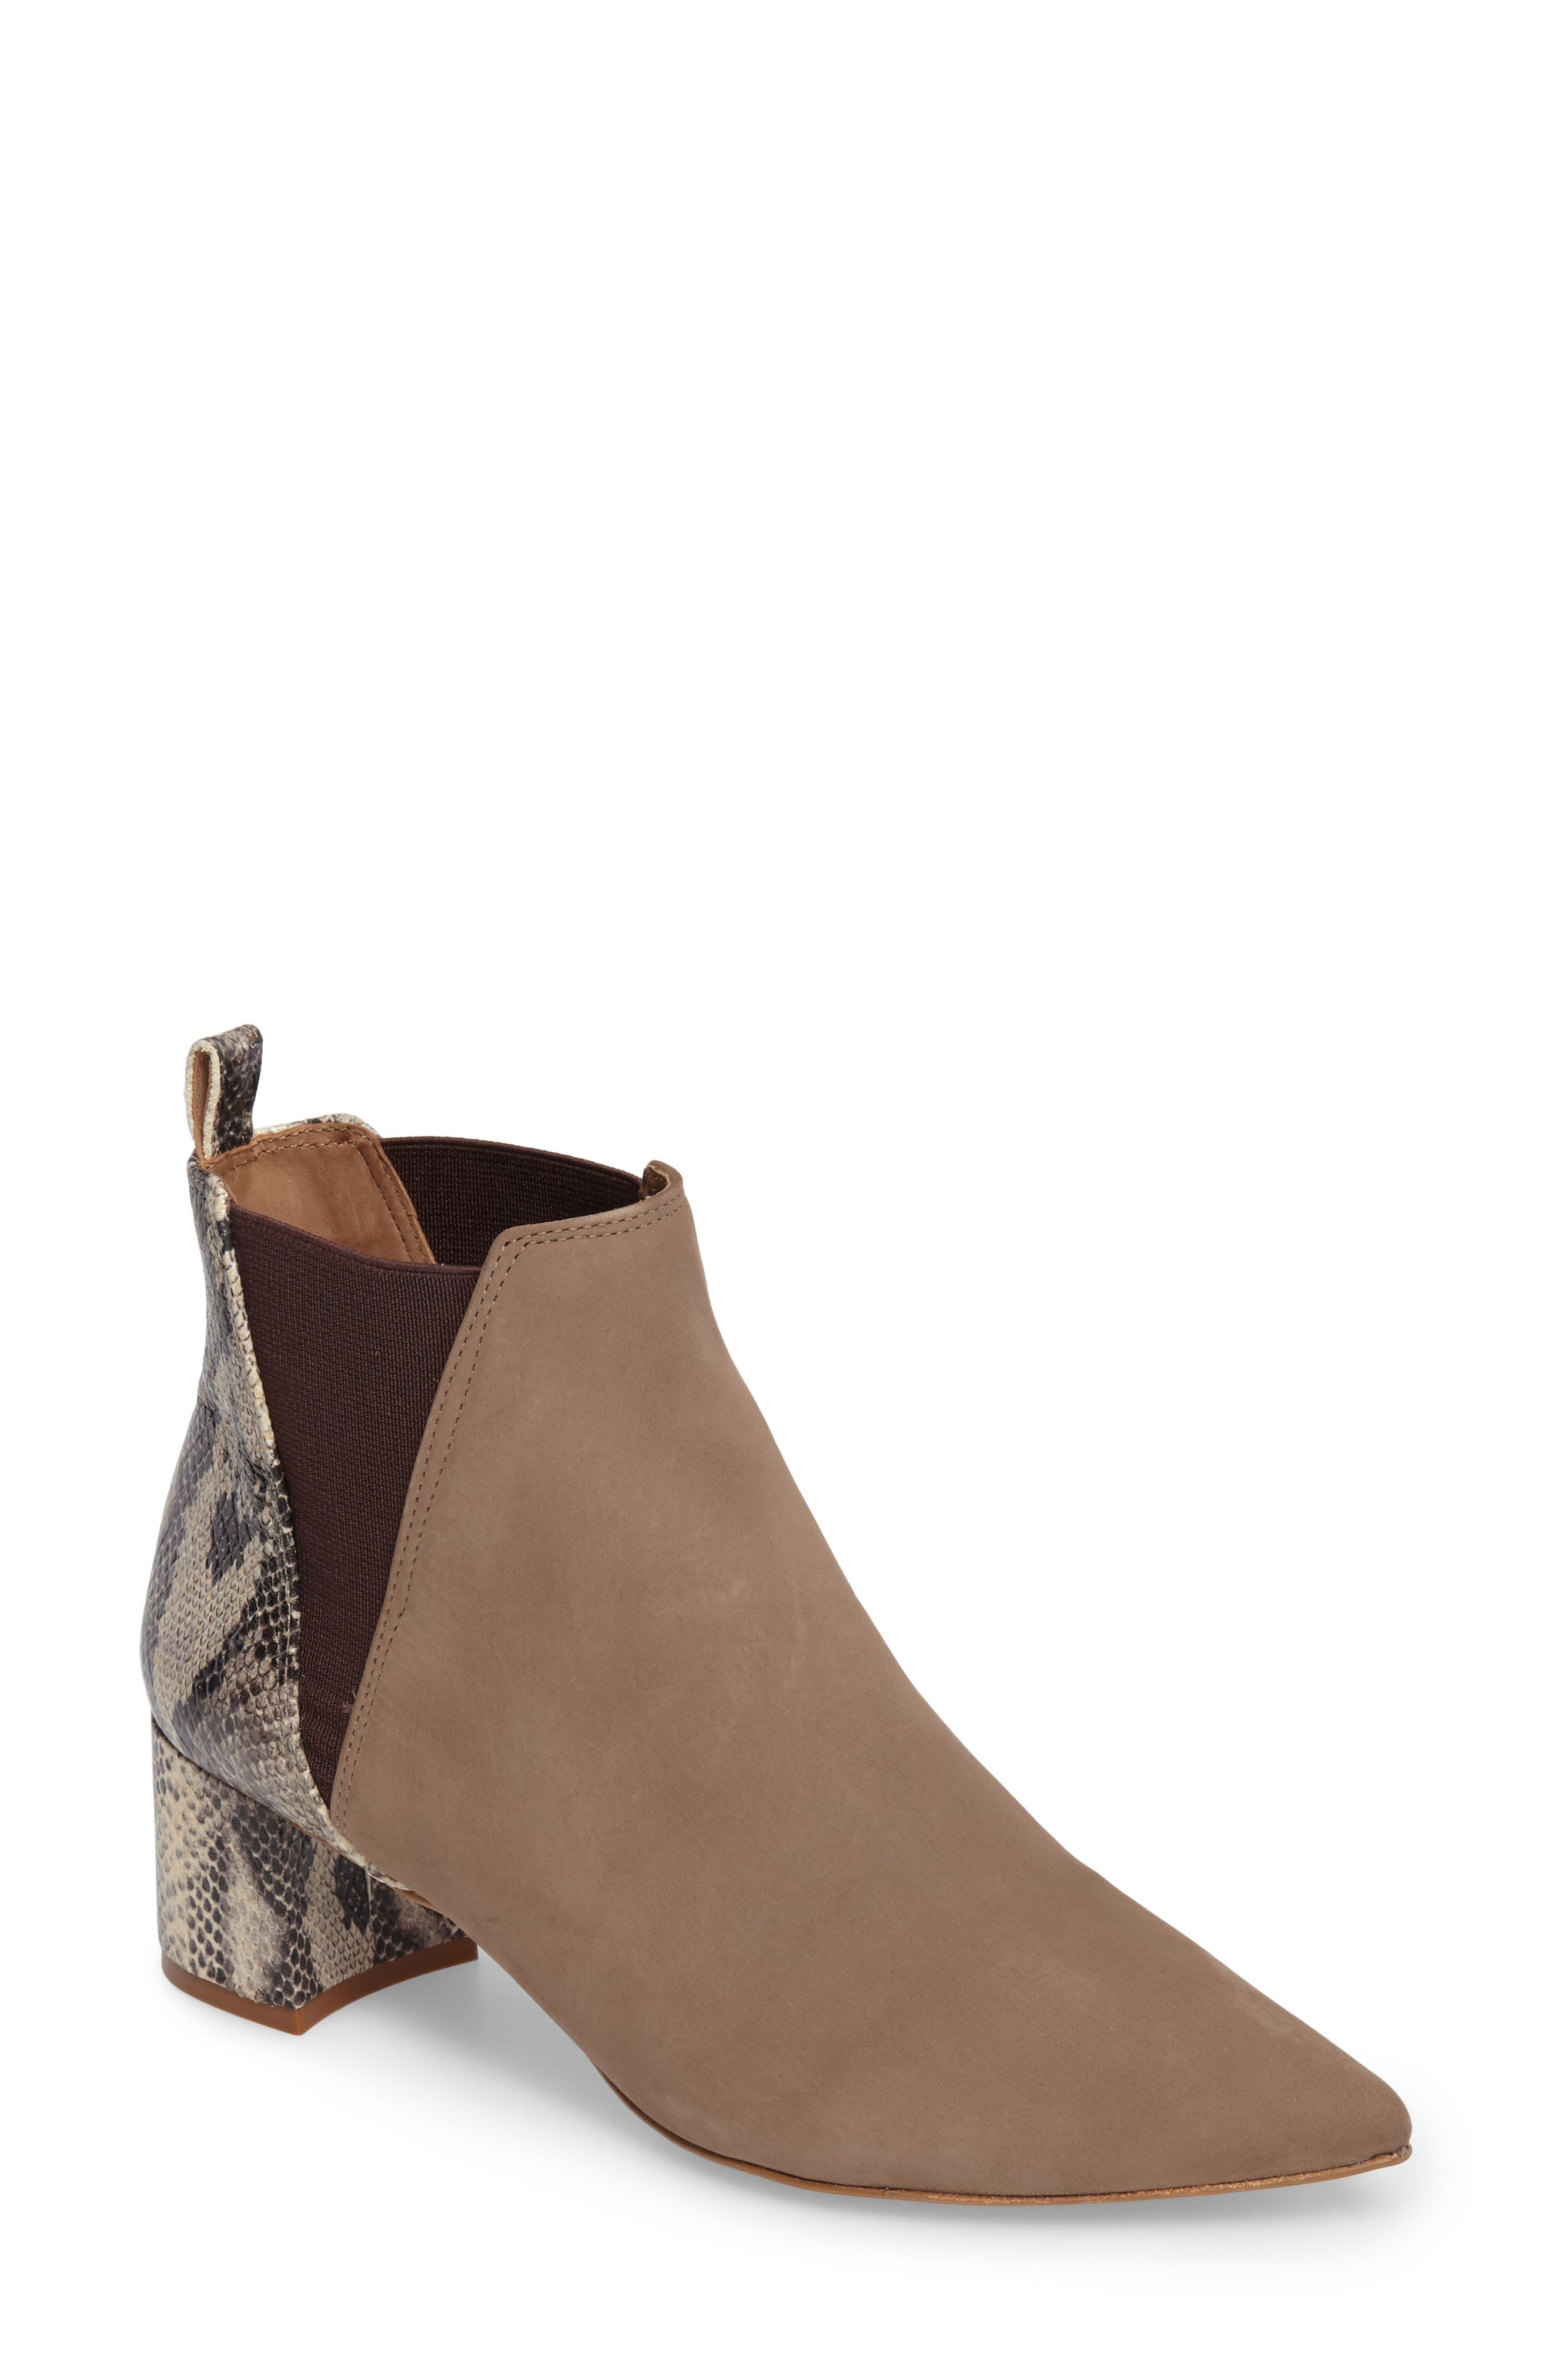 Renita Pointy Toe Chelsea Bootie,                             Main thumbnail 1, color,                             Taupe Snake Print Suede